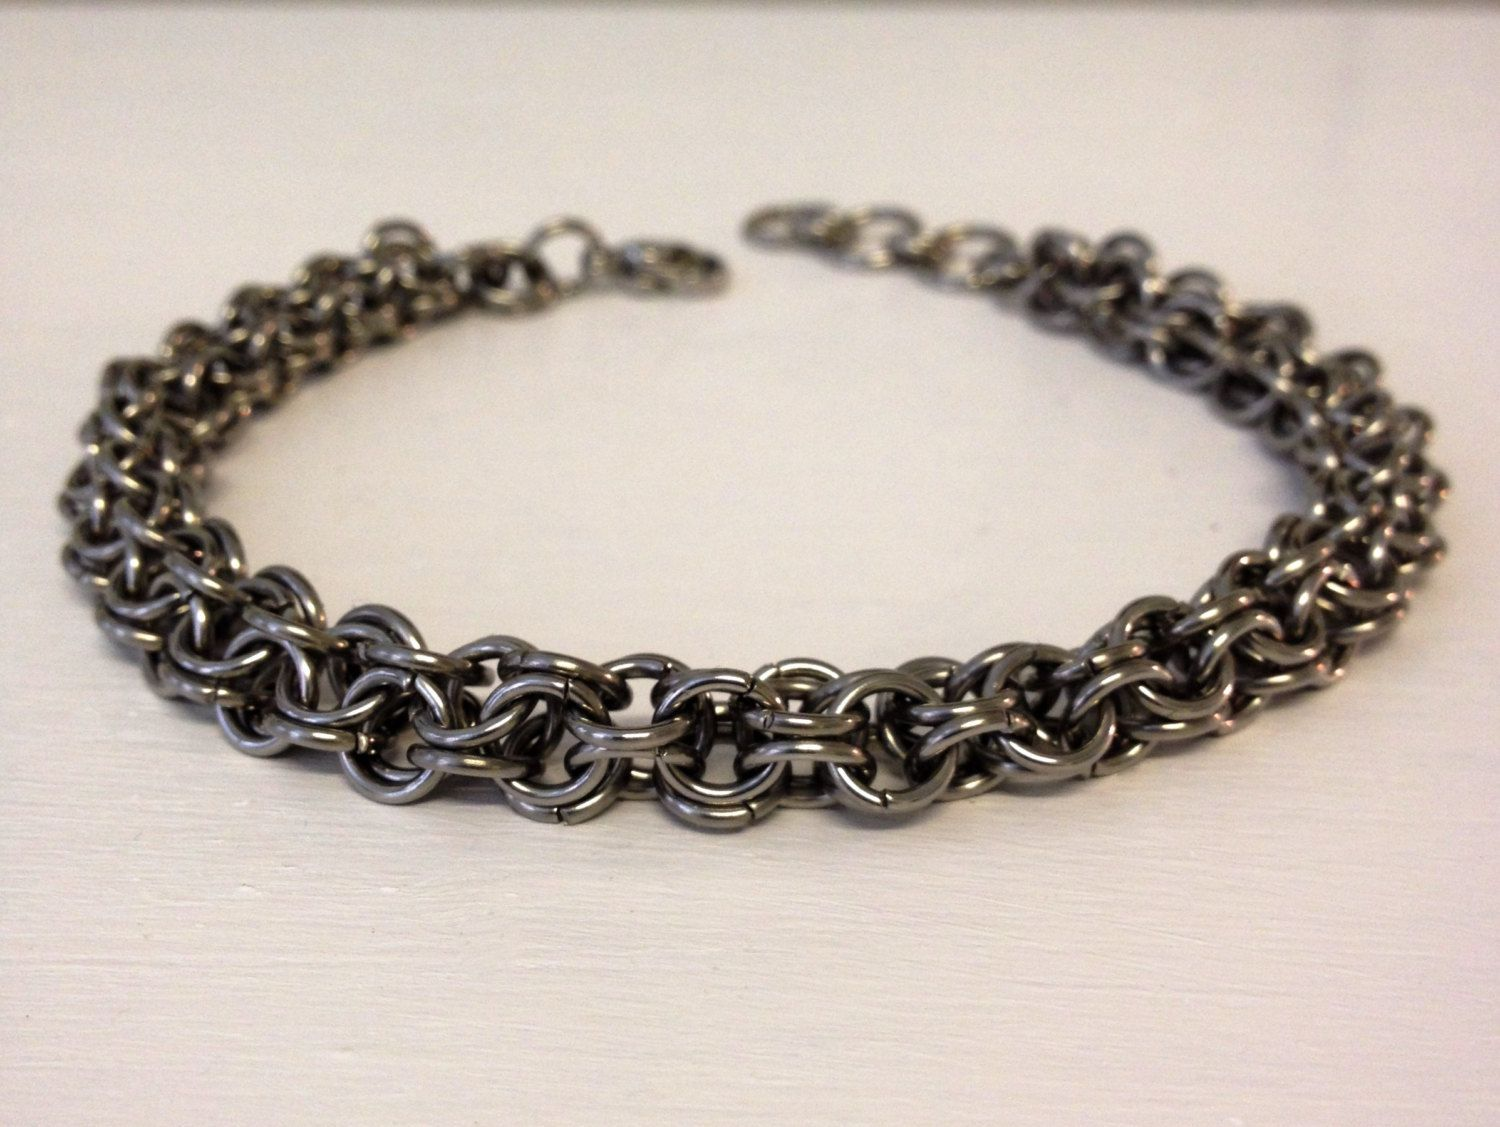 Stainless steel bracelet chainmail jewelry stainless steel jewelry